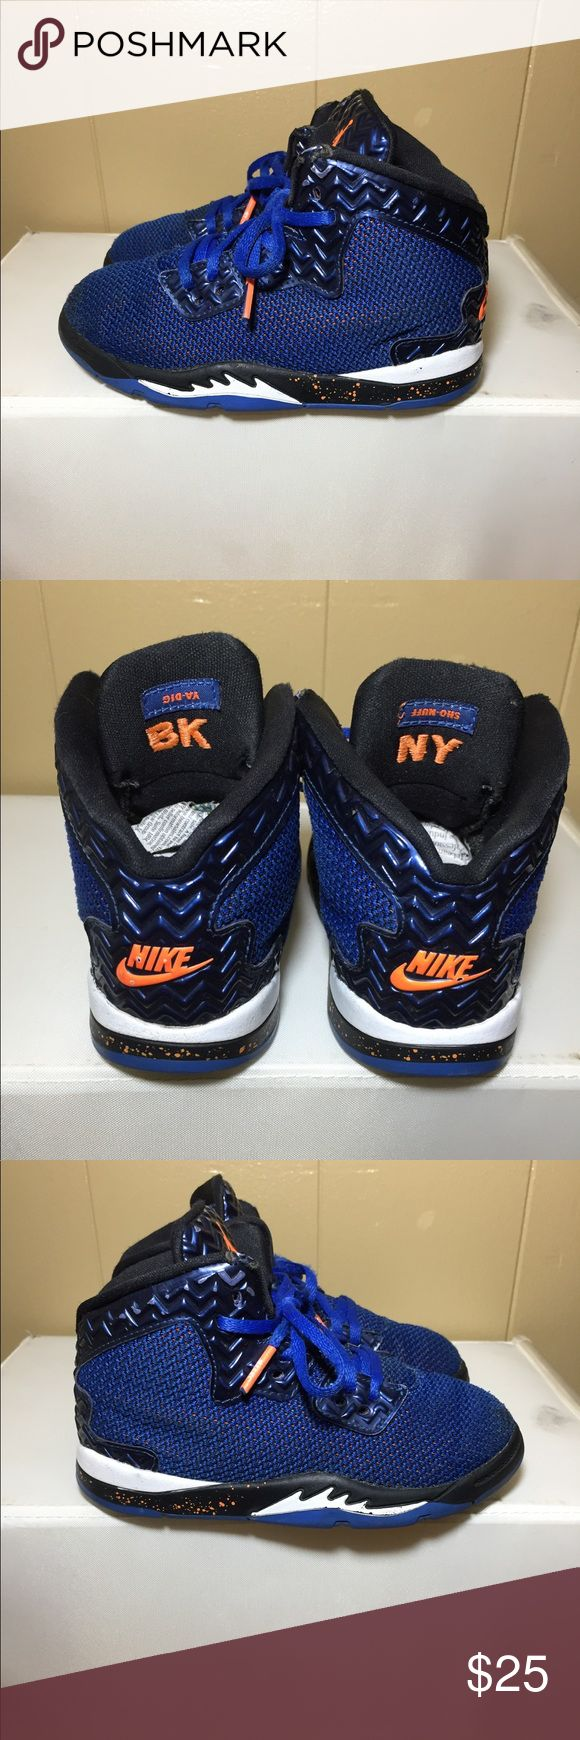 "Air Jordan Spike 40 -  size:10c -colorway:	blue/orange-white,black -stylecode:807545-405 -Release Date:2015 -conditions: slight signs of wear,small tears near tounge -NO box  ⬅️ -100% authentic⬅️ -🚫no trades🚫 -Open to serious offers via the "" offer"" feature⬅️ -sold as is!!!please look at all pictures and ask questions before buying shoes ⬅️ -irrelevant comments will get you blocked Jordan Shoes Sneakers"